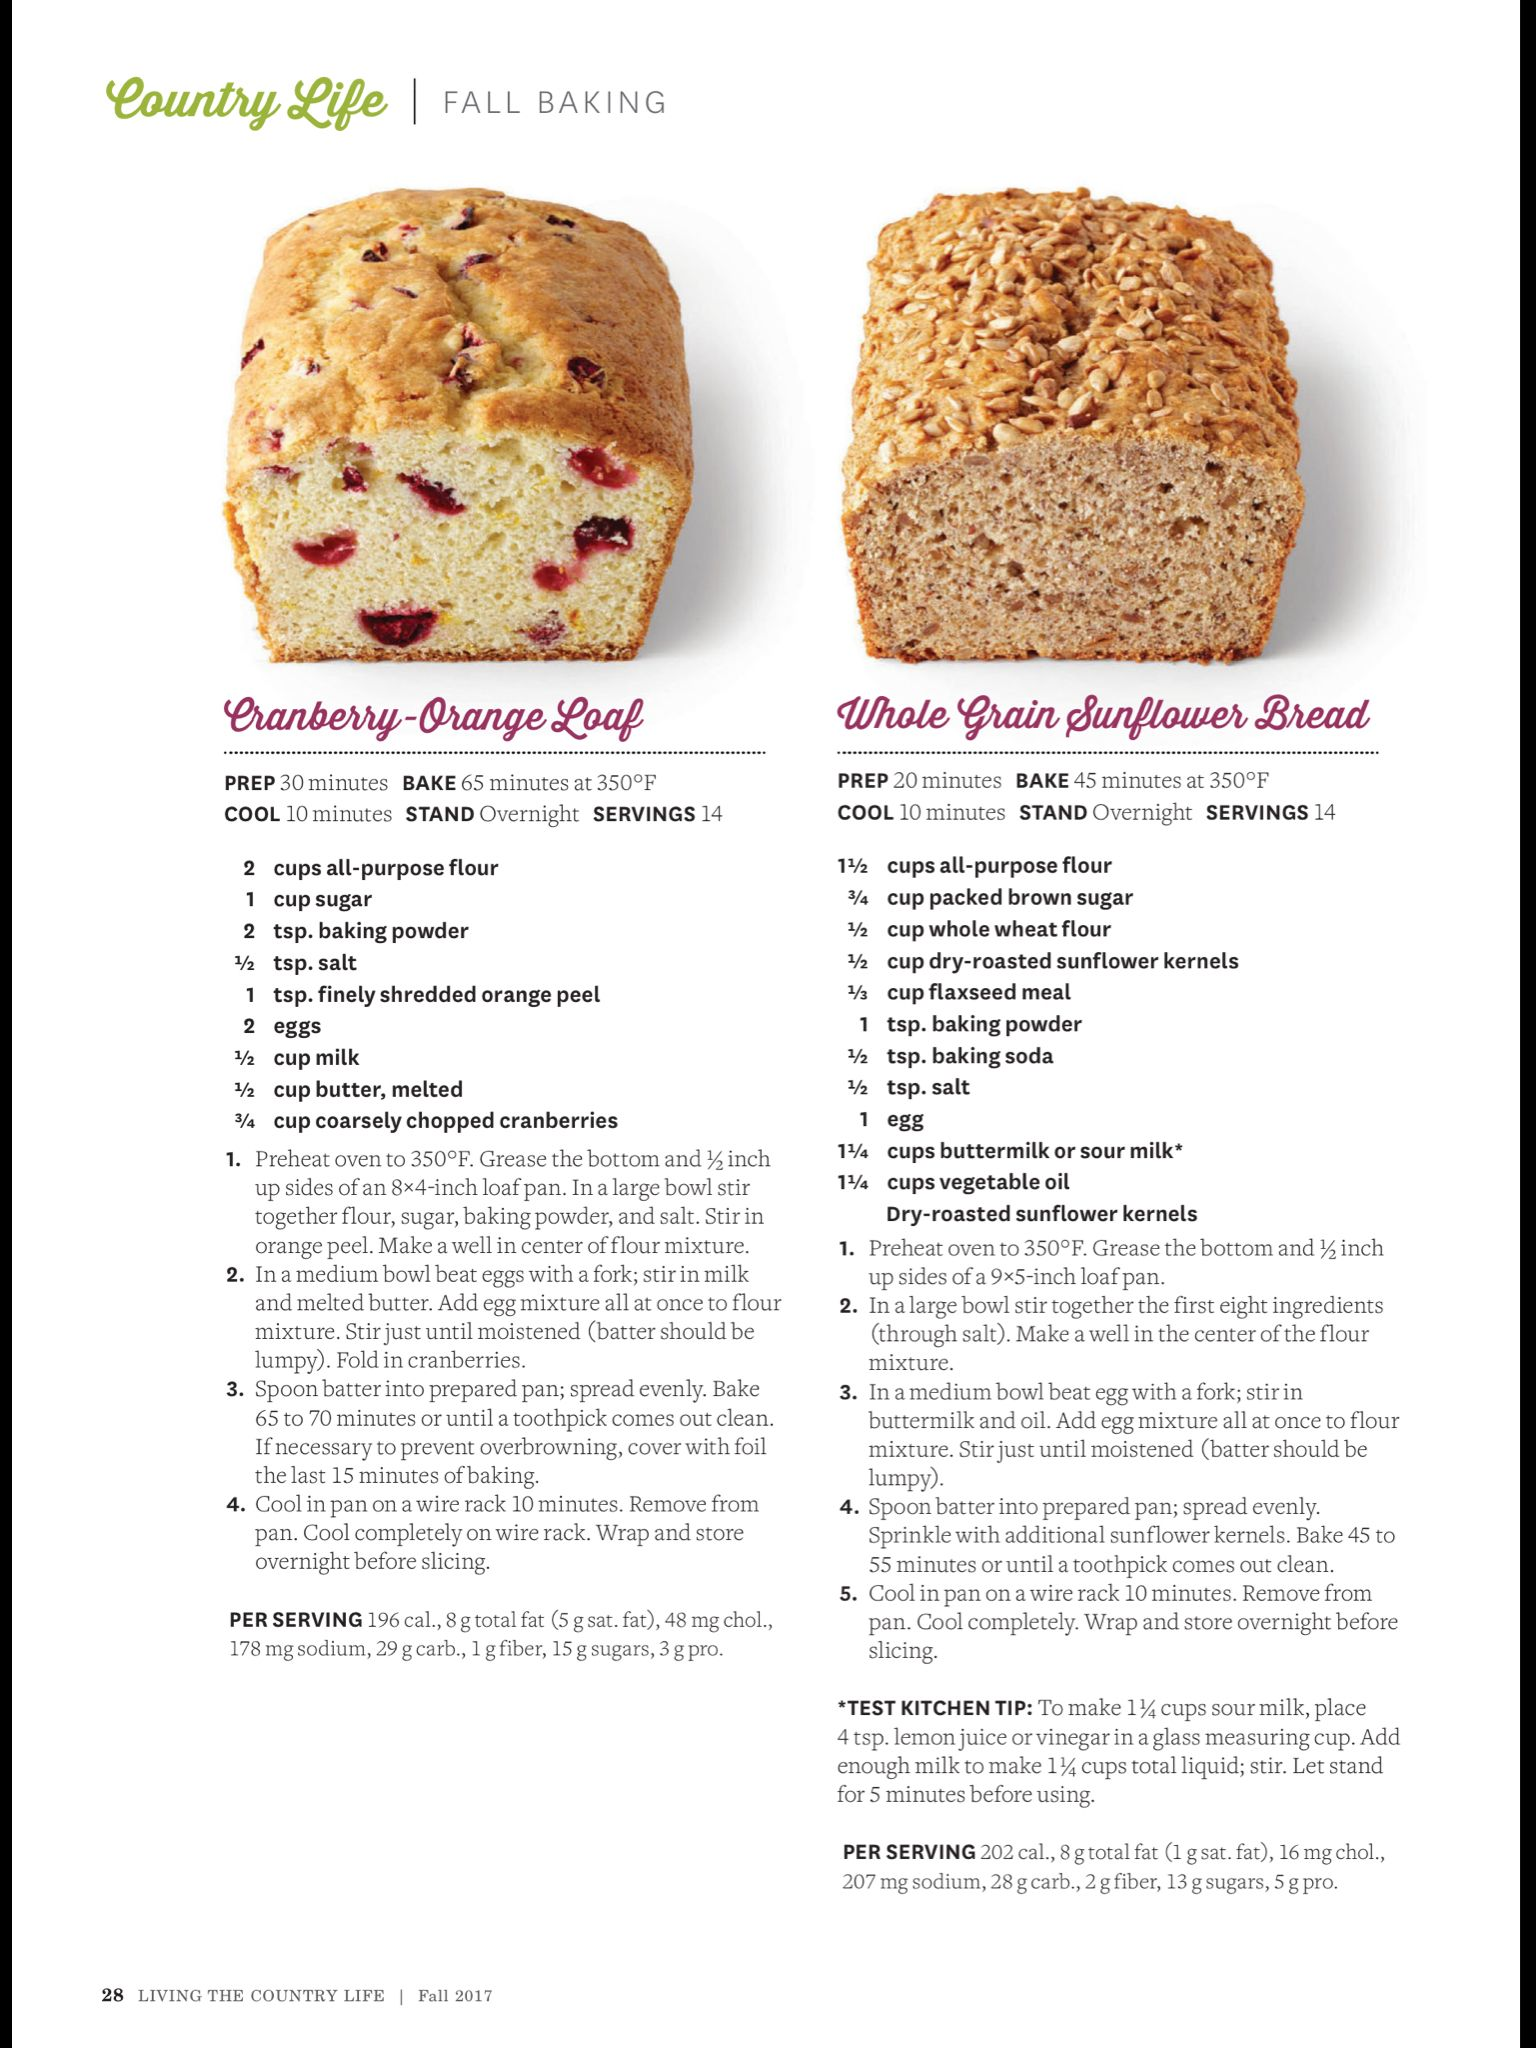 Quick Breads From Living The Country Life Fall 2017 Read It On The Texture App Unlimited Access To 200 Top Magazines Fall Baking Dessert Recipes Bread